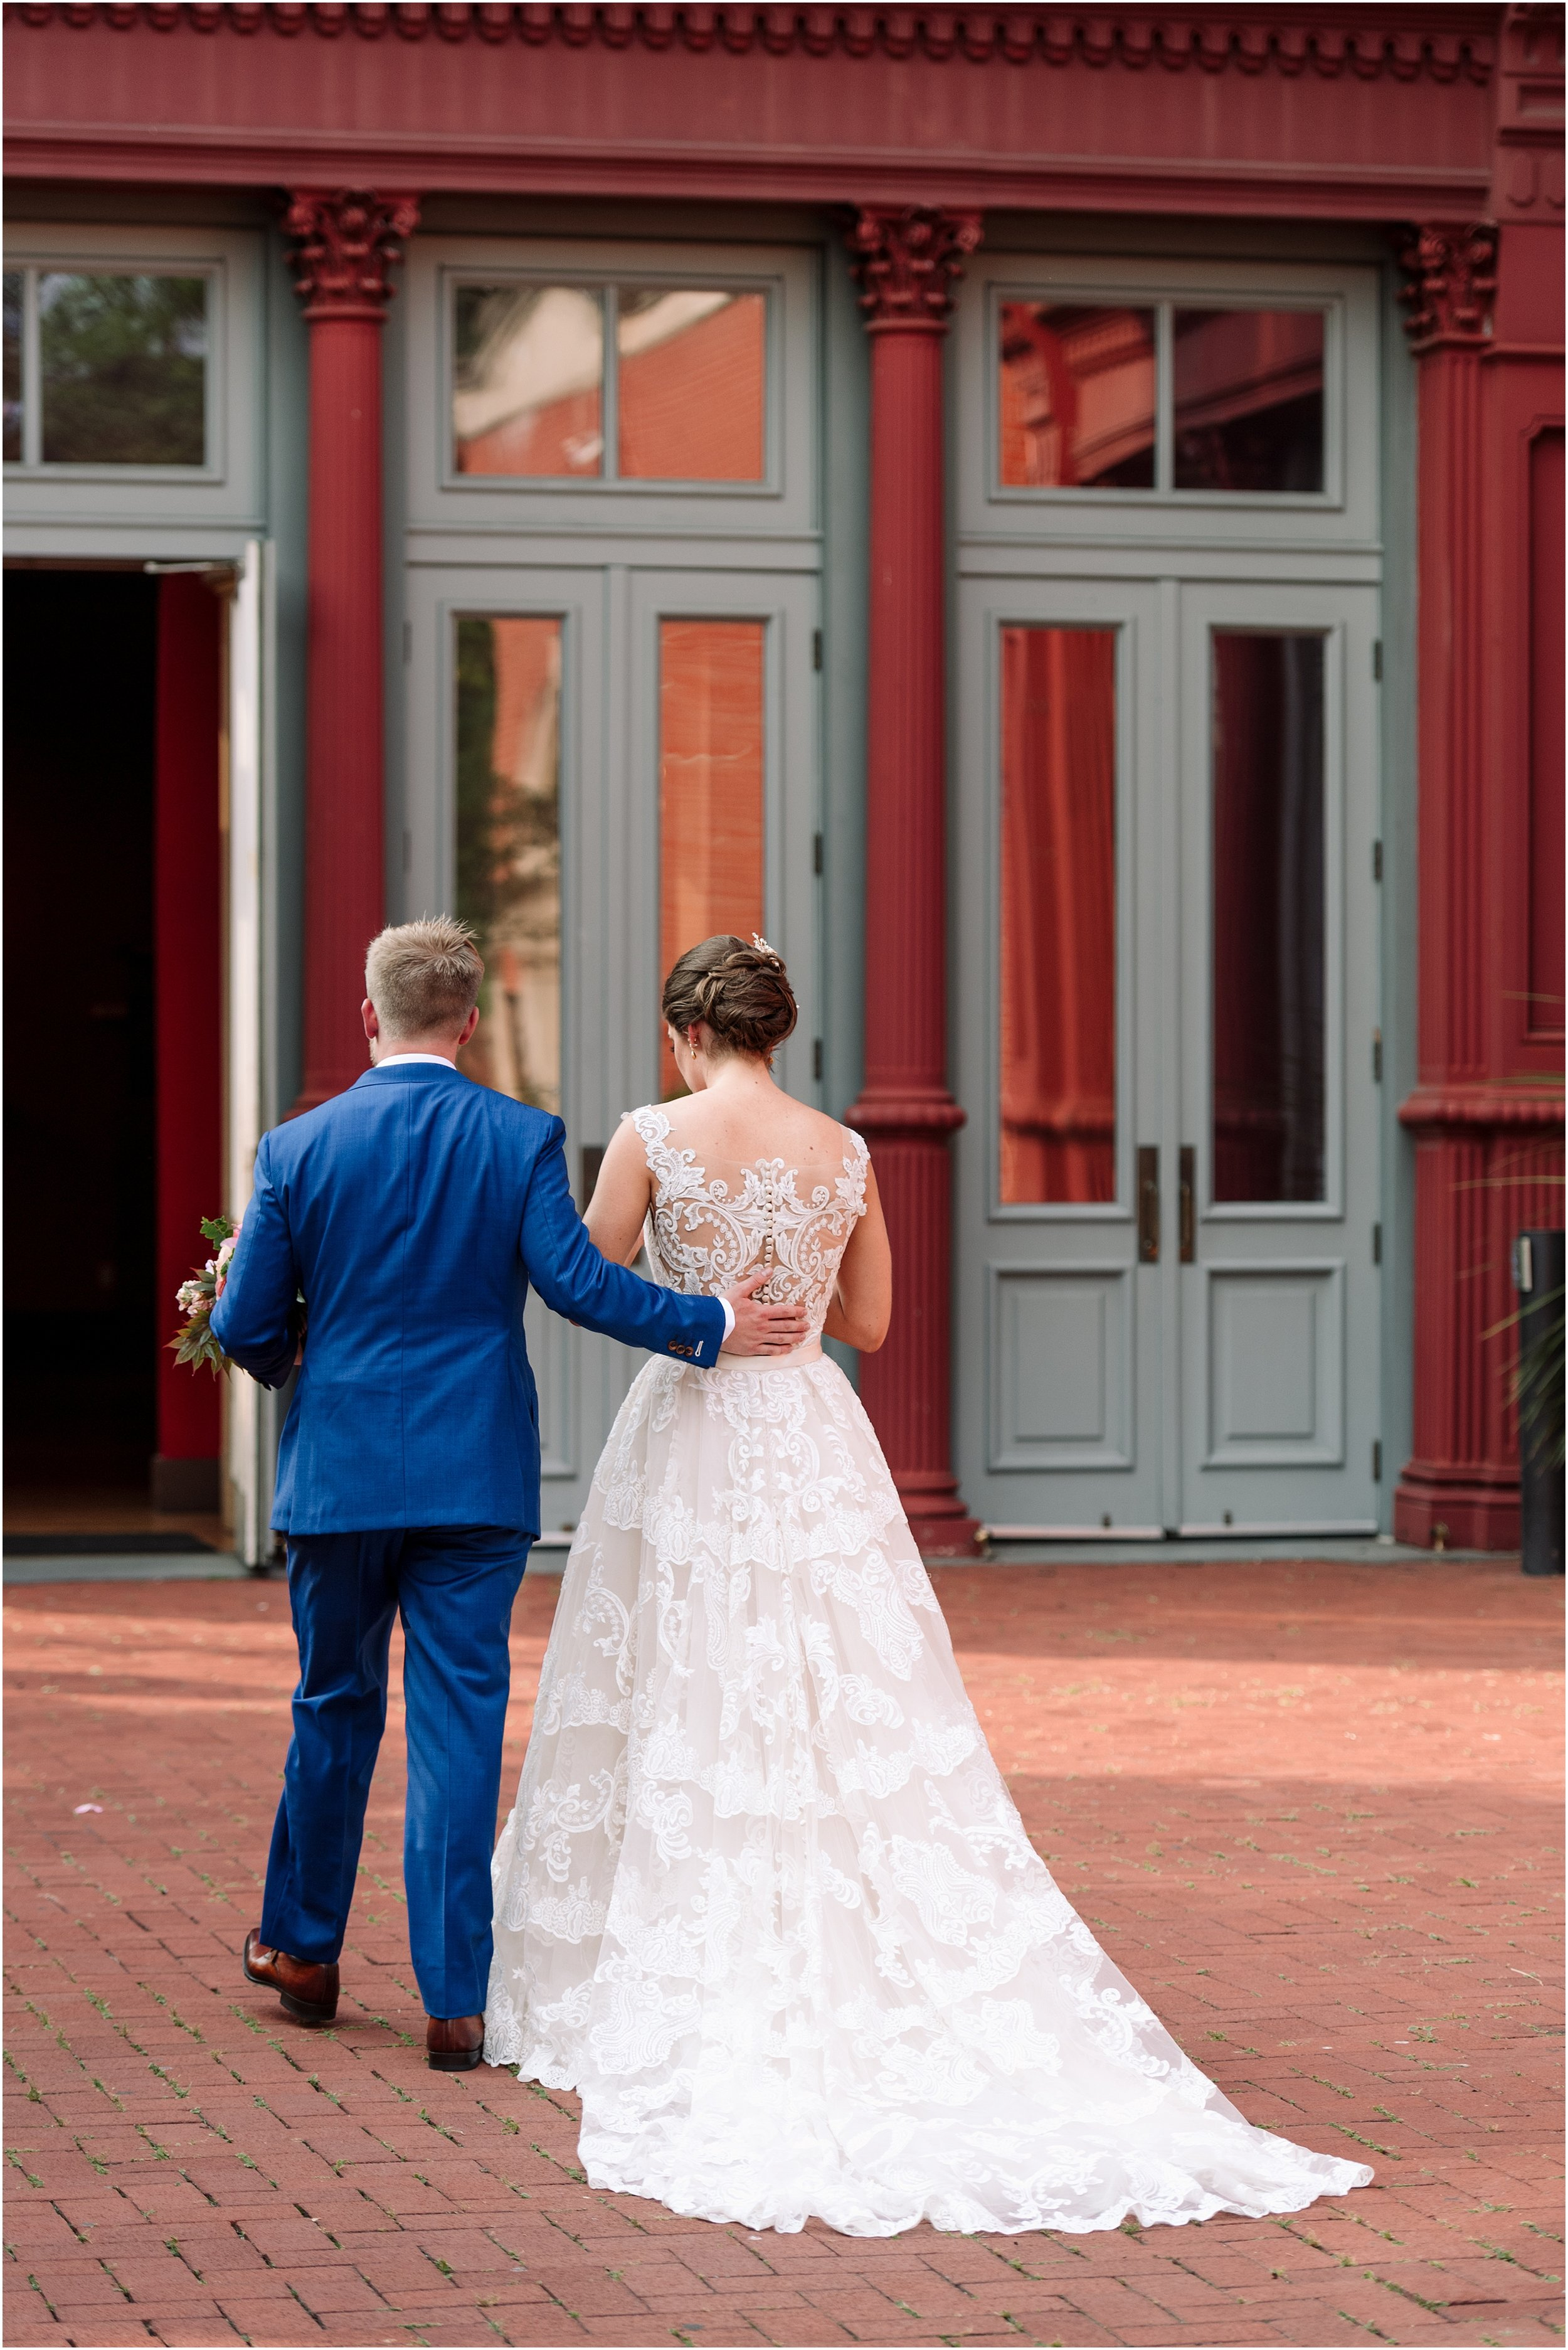 hannah leigh photography 1840s plaza wedding baltimore md_0066.jpg